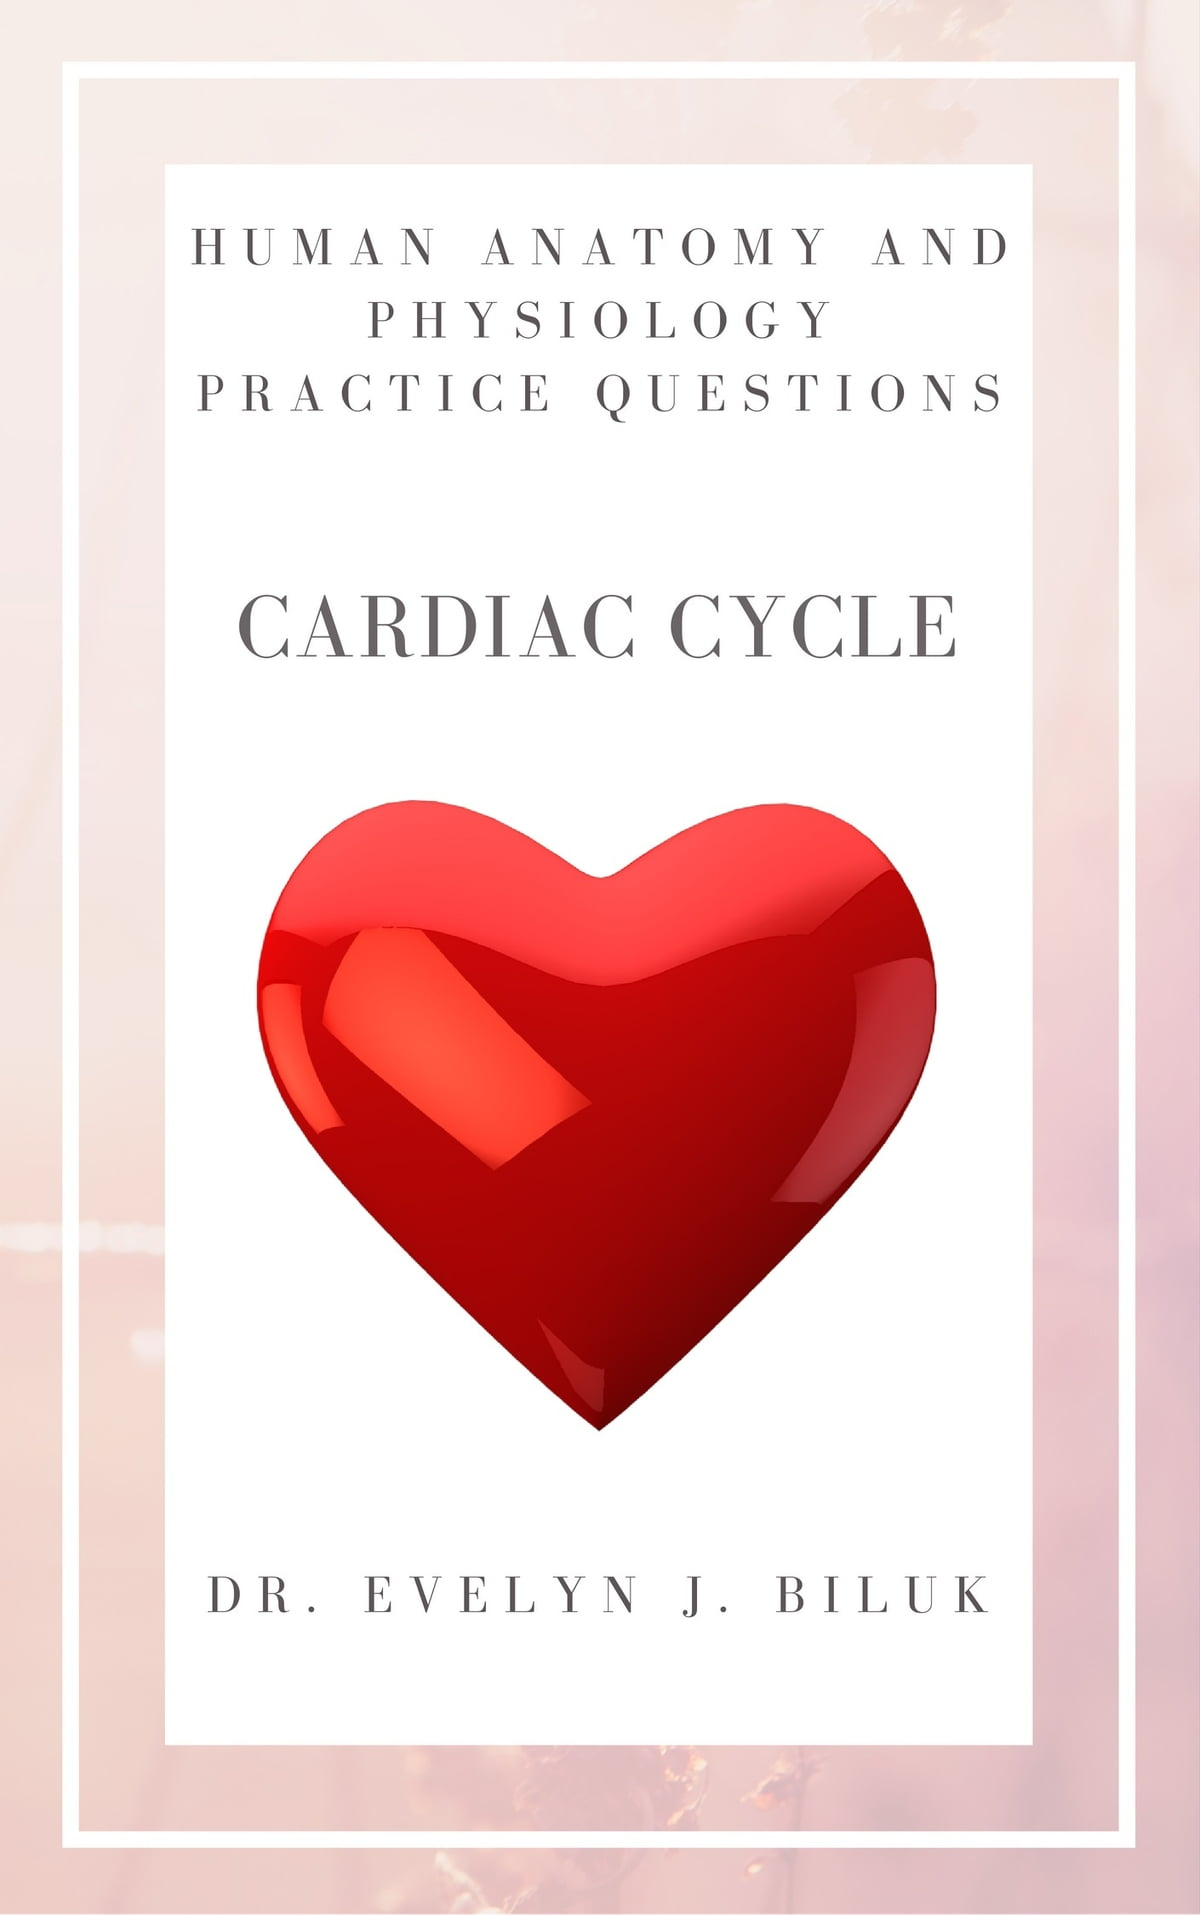 Human Anatomy and Physiology Practice Questions: Cardiac Cycle eBook ...